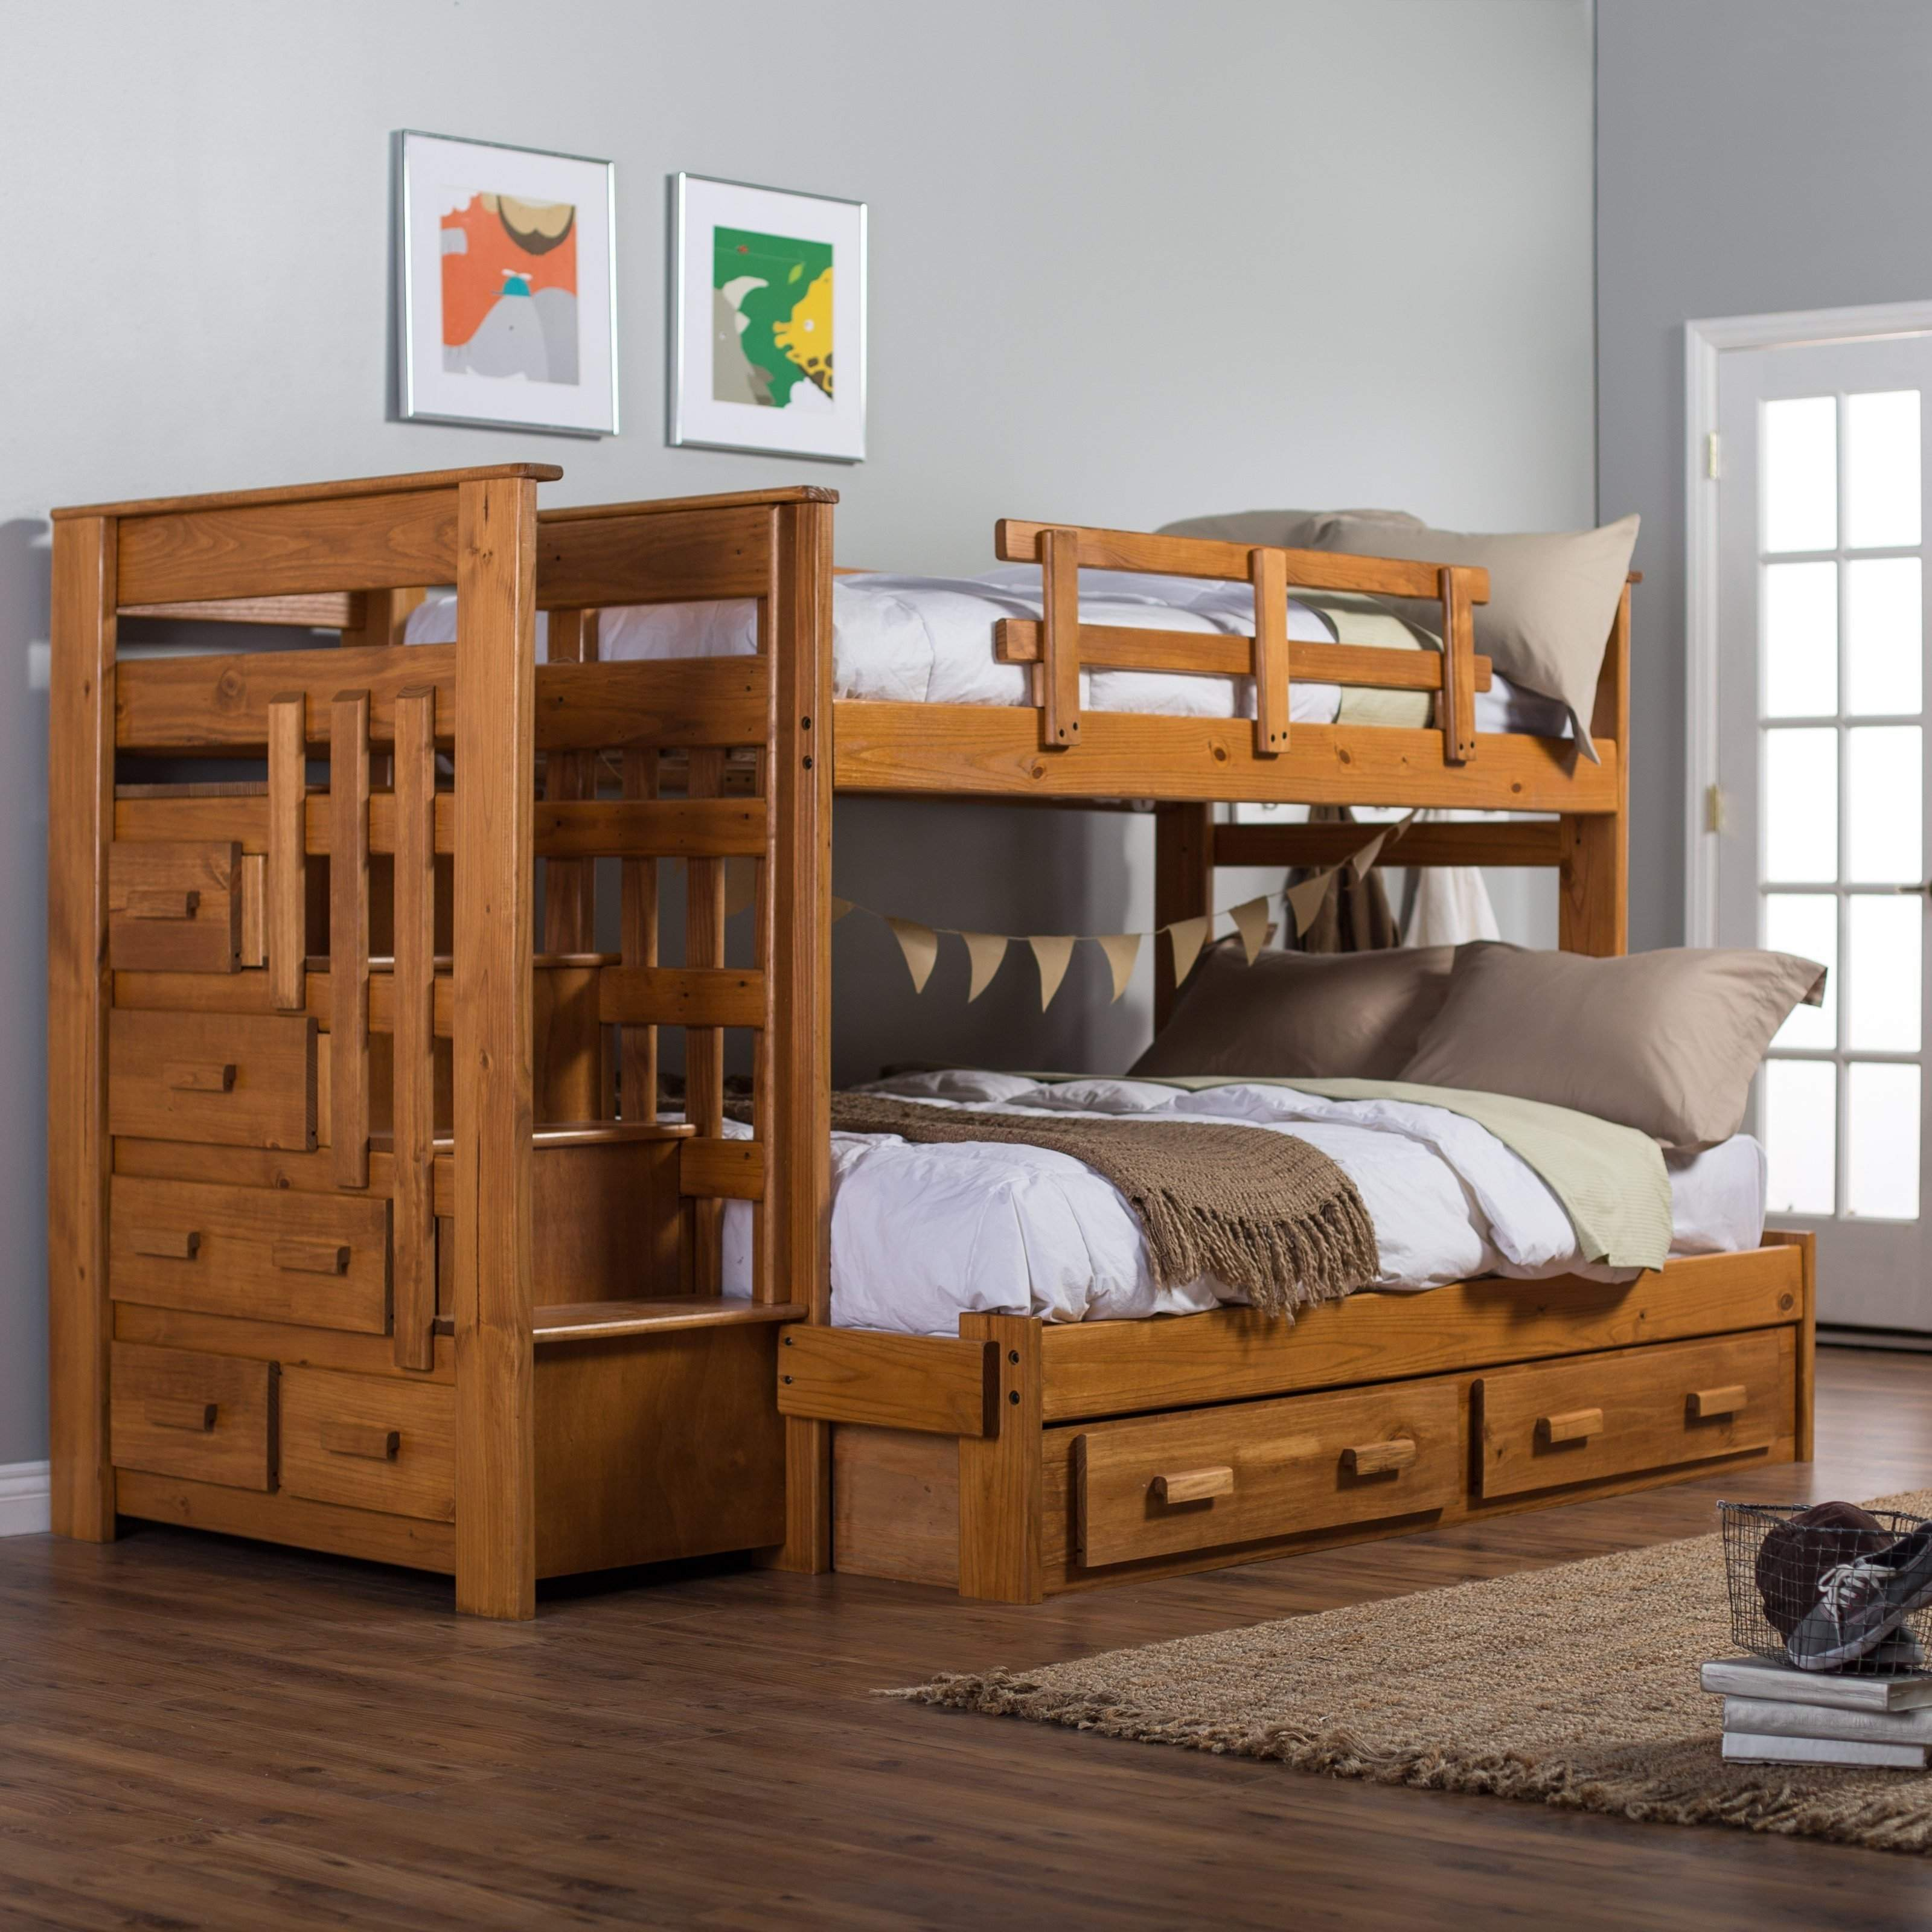 Unique Boys Twin Bed Wooden Houses